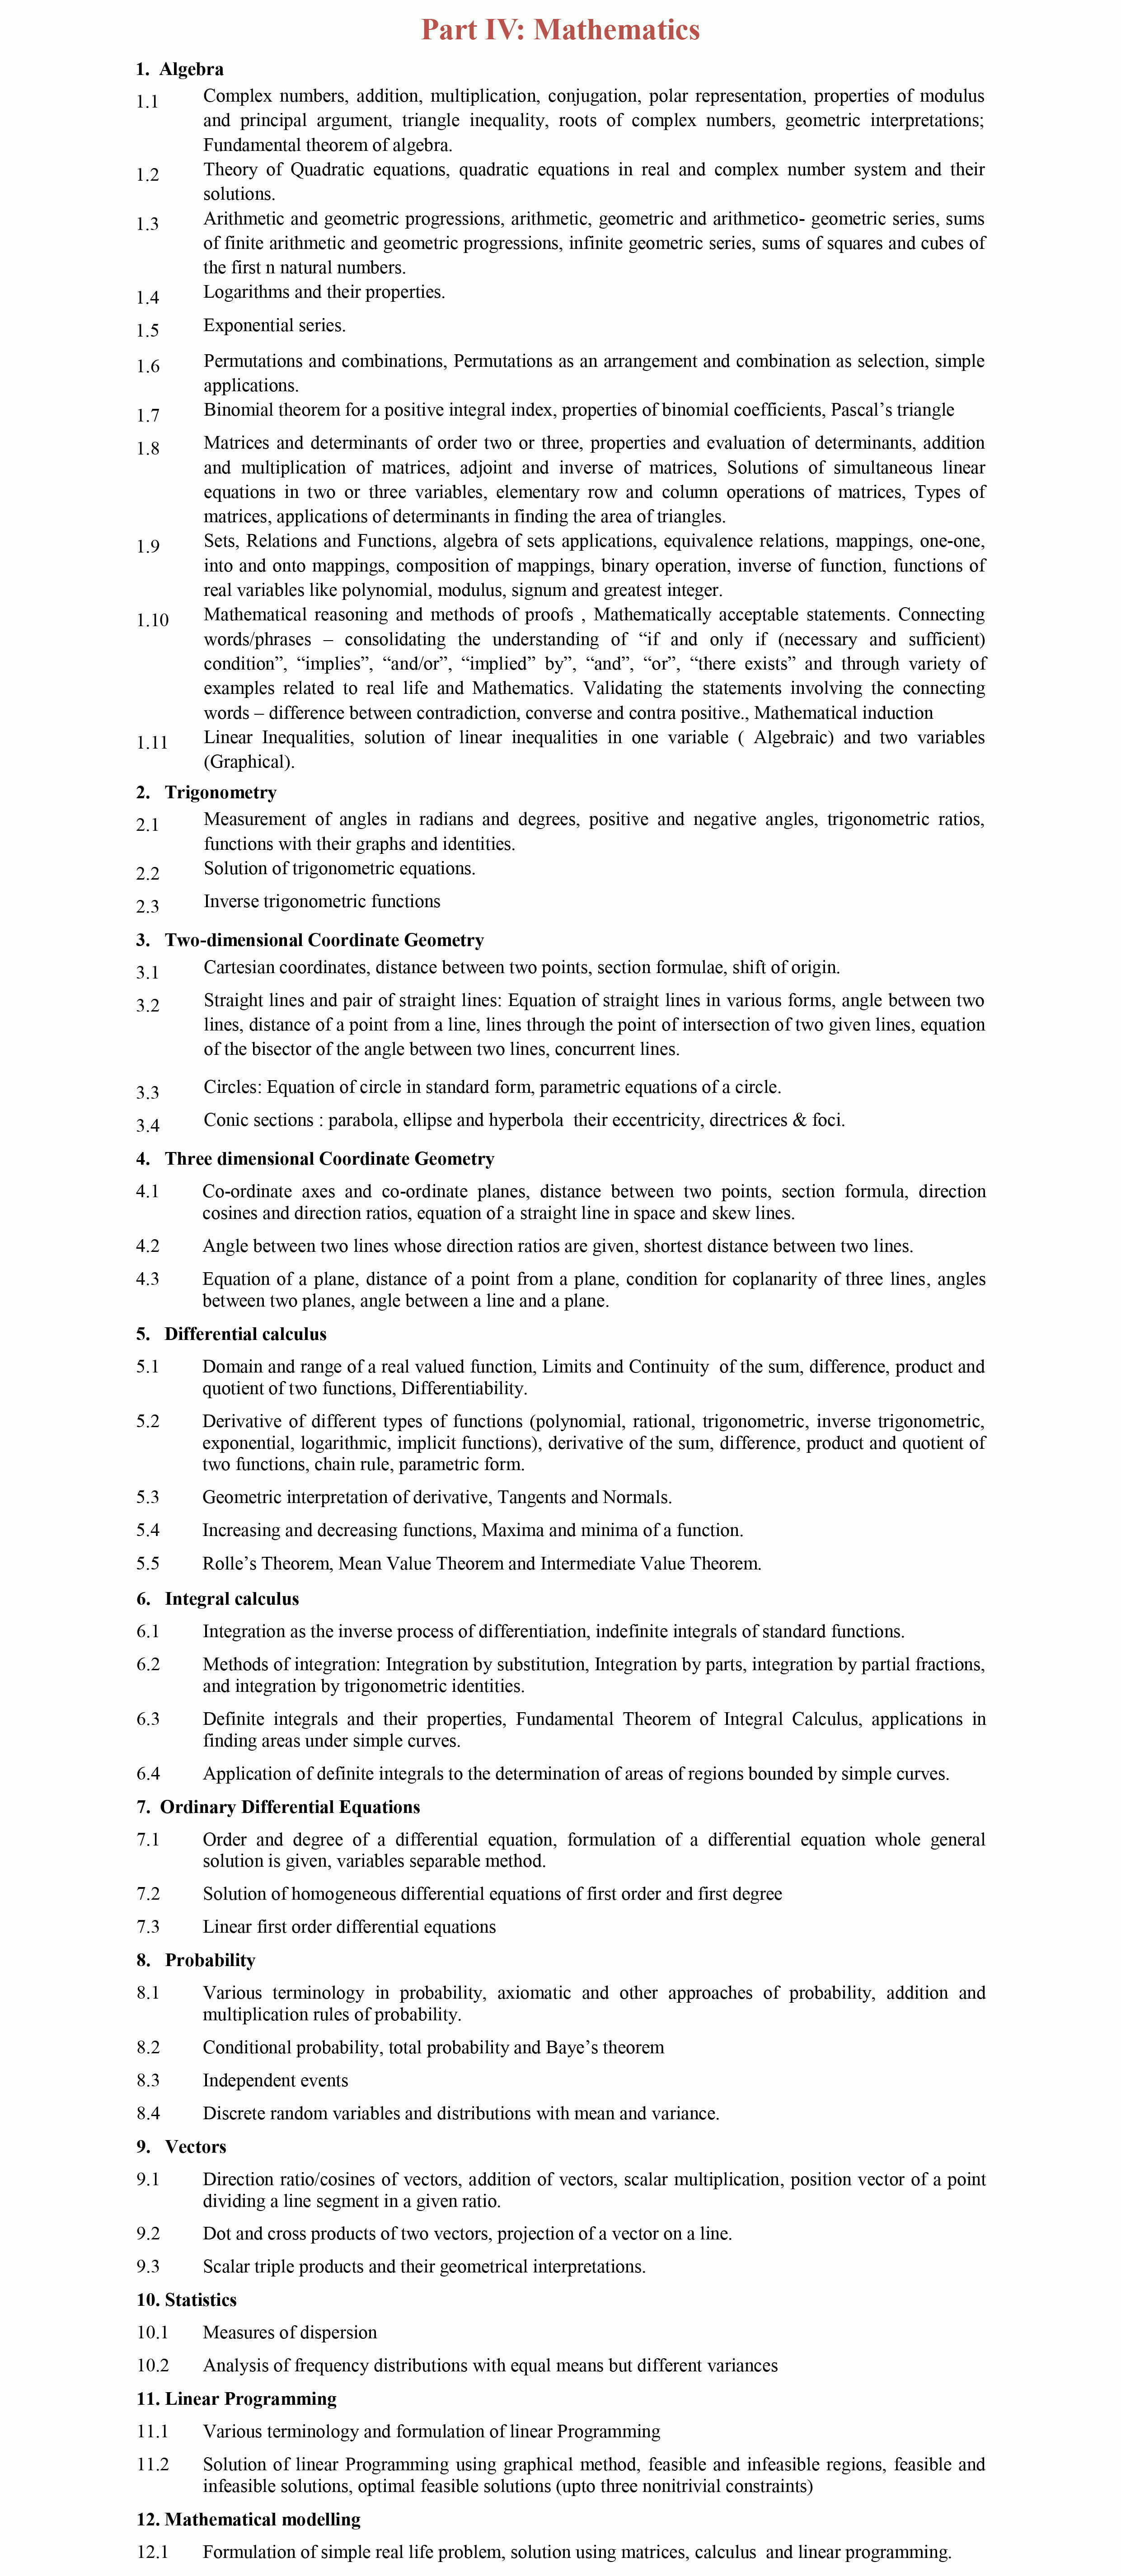 BITSAT Mathematics Syllabus